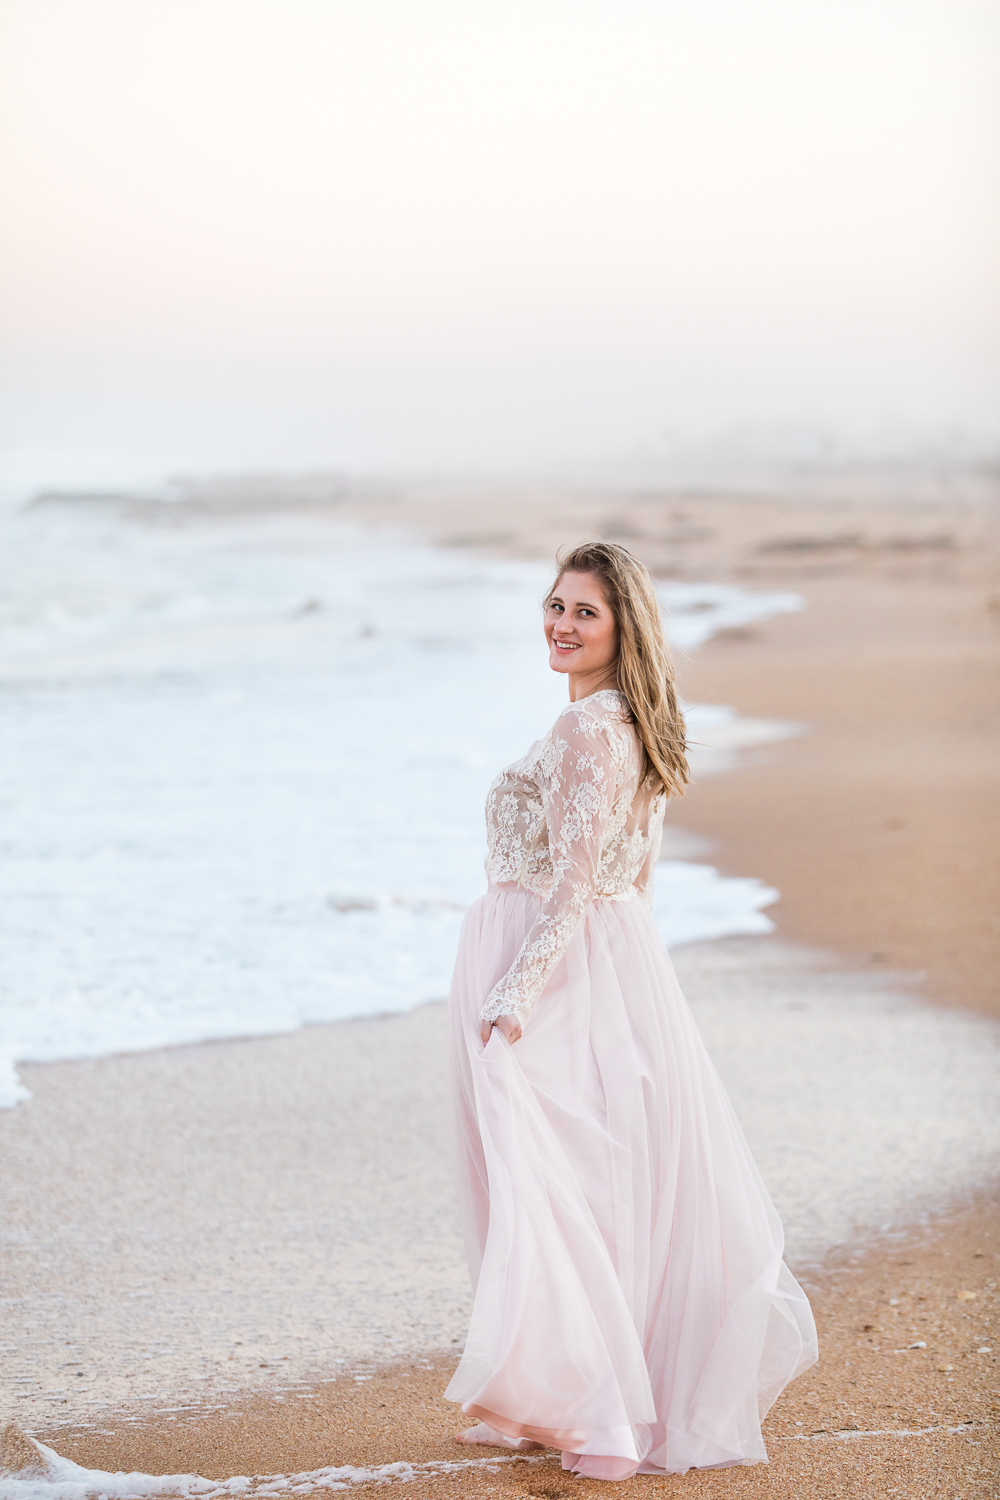 Engagement pictures with bride-to-be